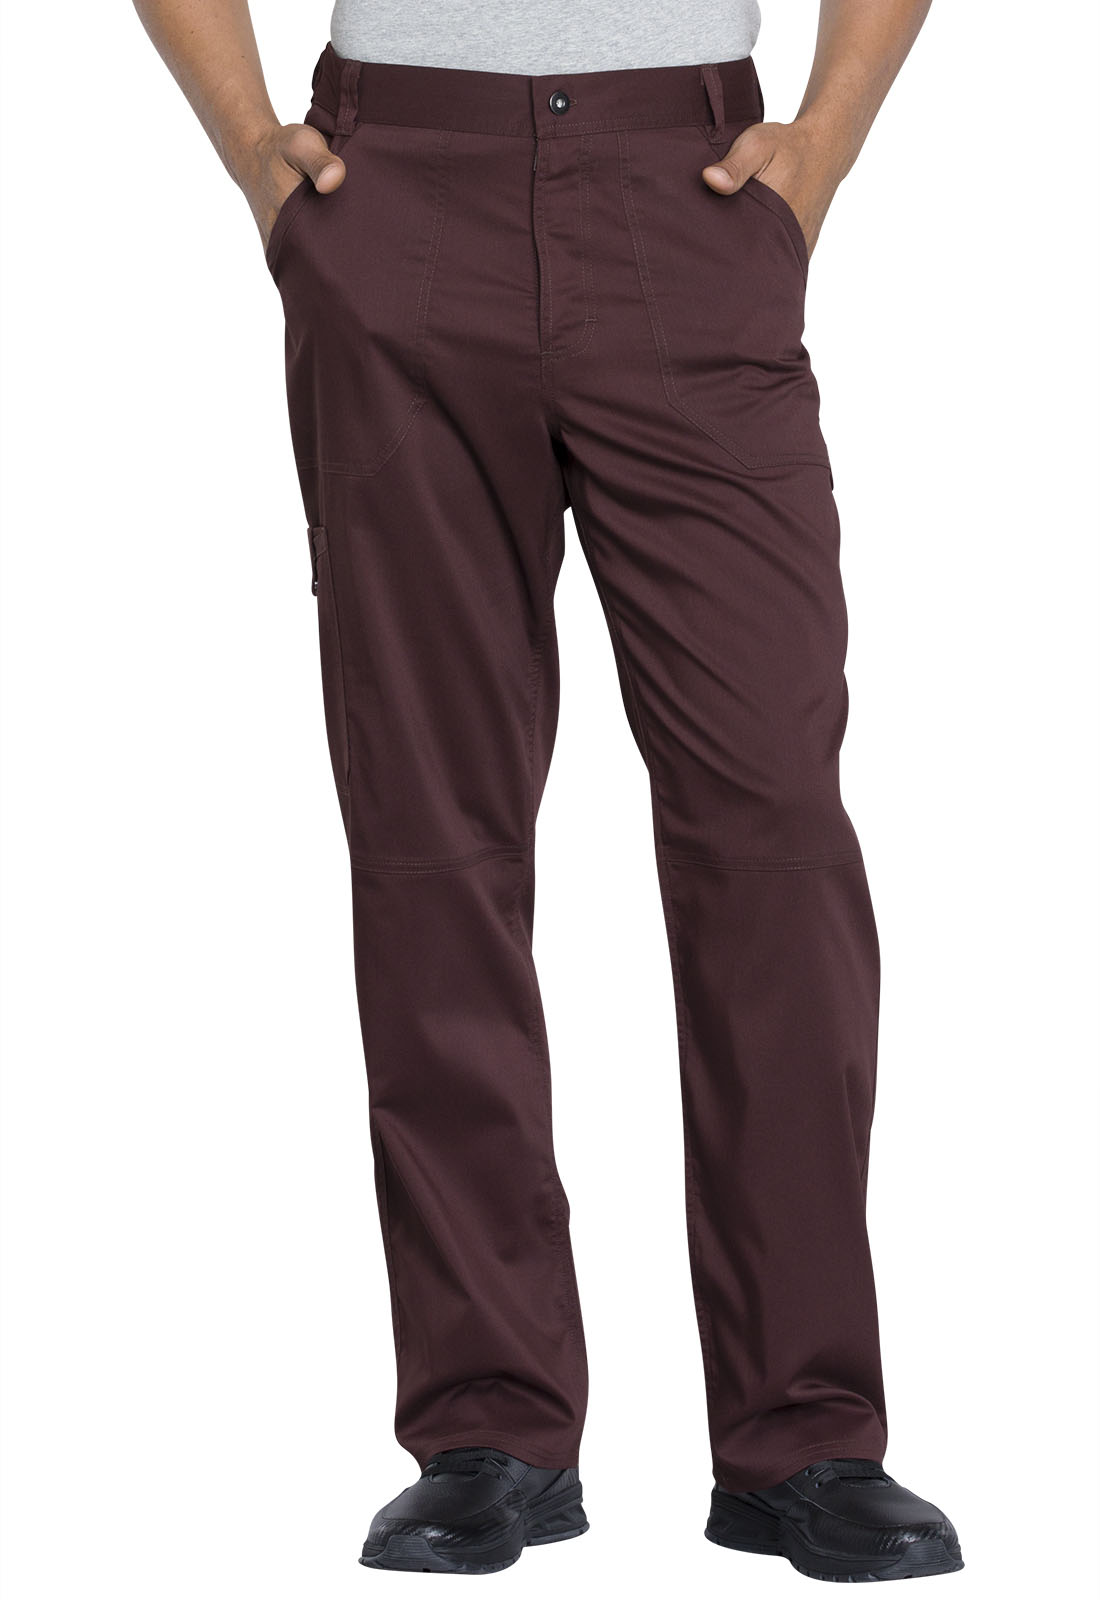 90d7d0fc078 WW Revolution Men's Fly Front Pant in Espresso WW140-ESP from ...